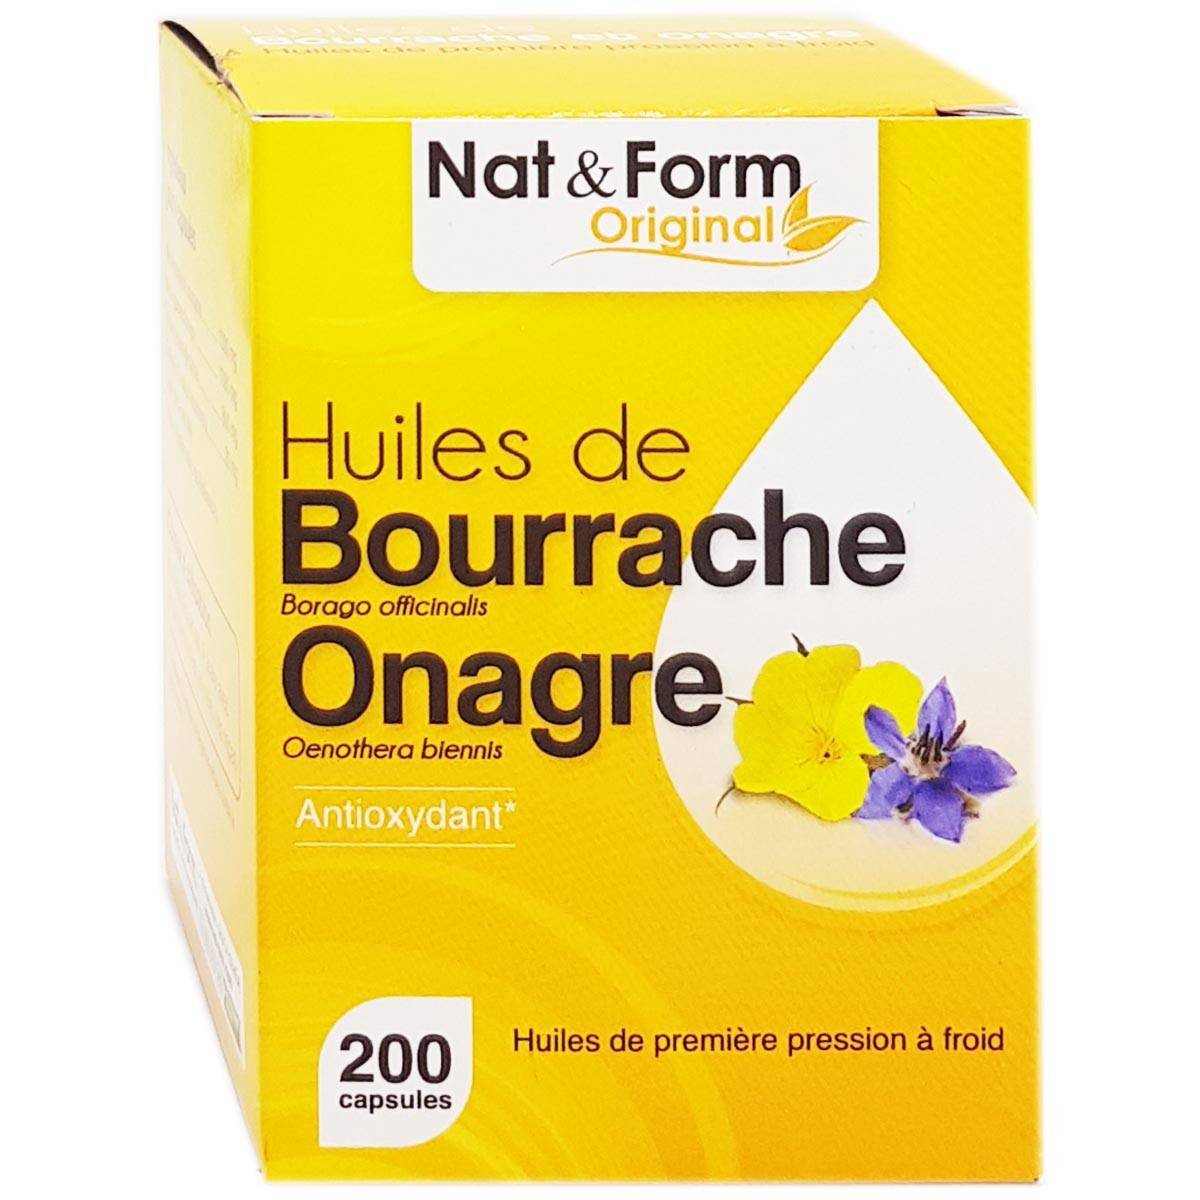 Nat & form original huiles de bourrache onagre 200 capsules